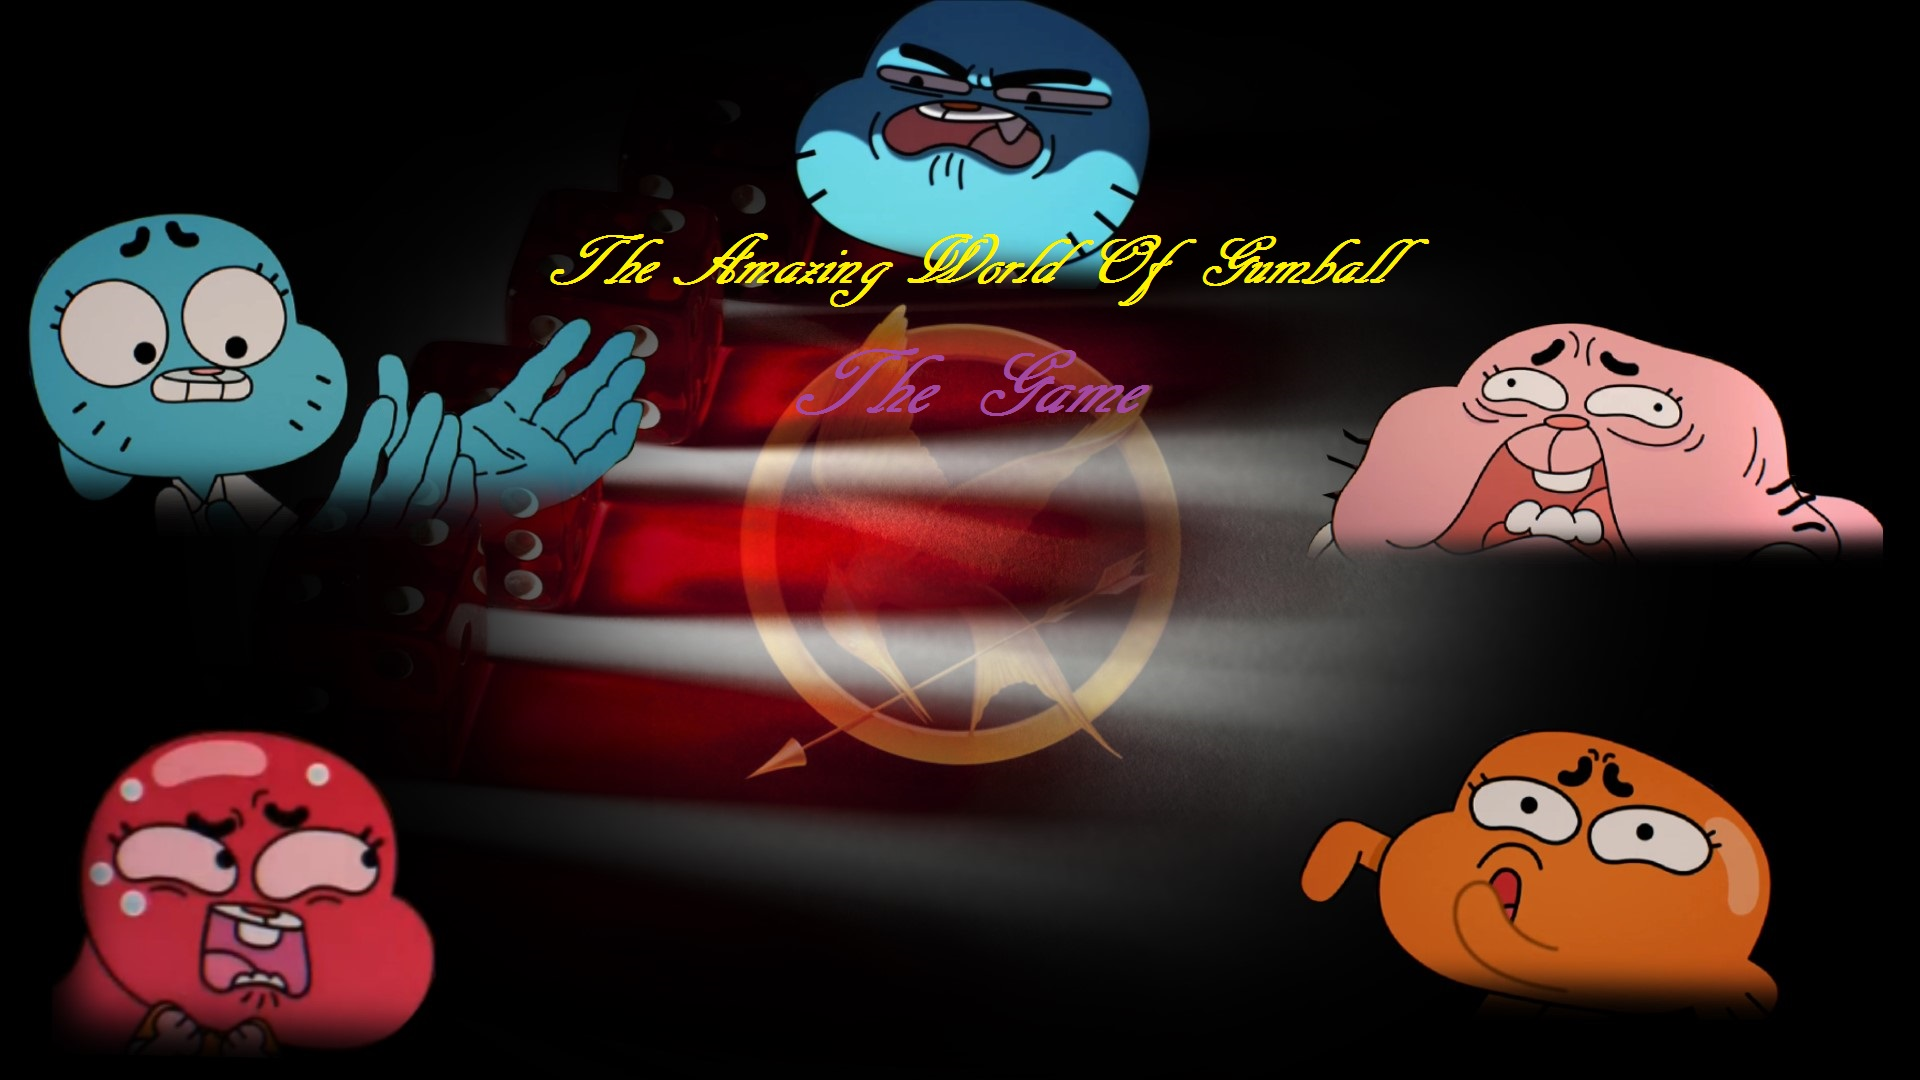 The Amazing World Of Gumball The Game Wallpaper By Edisonyeejia On